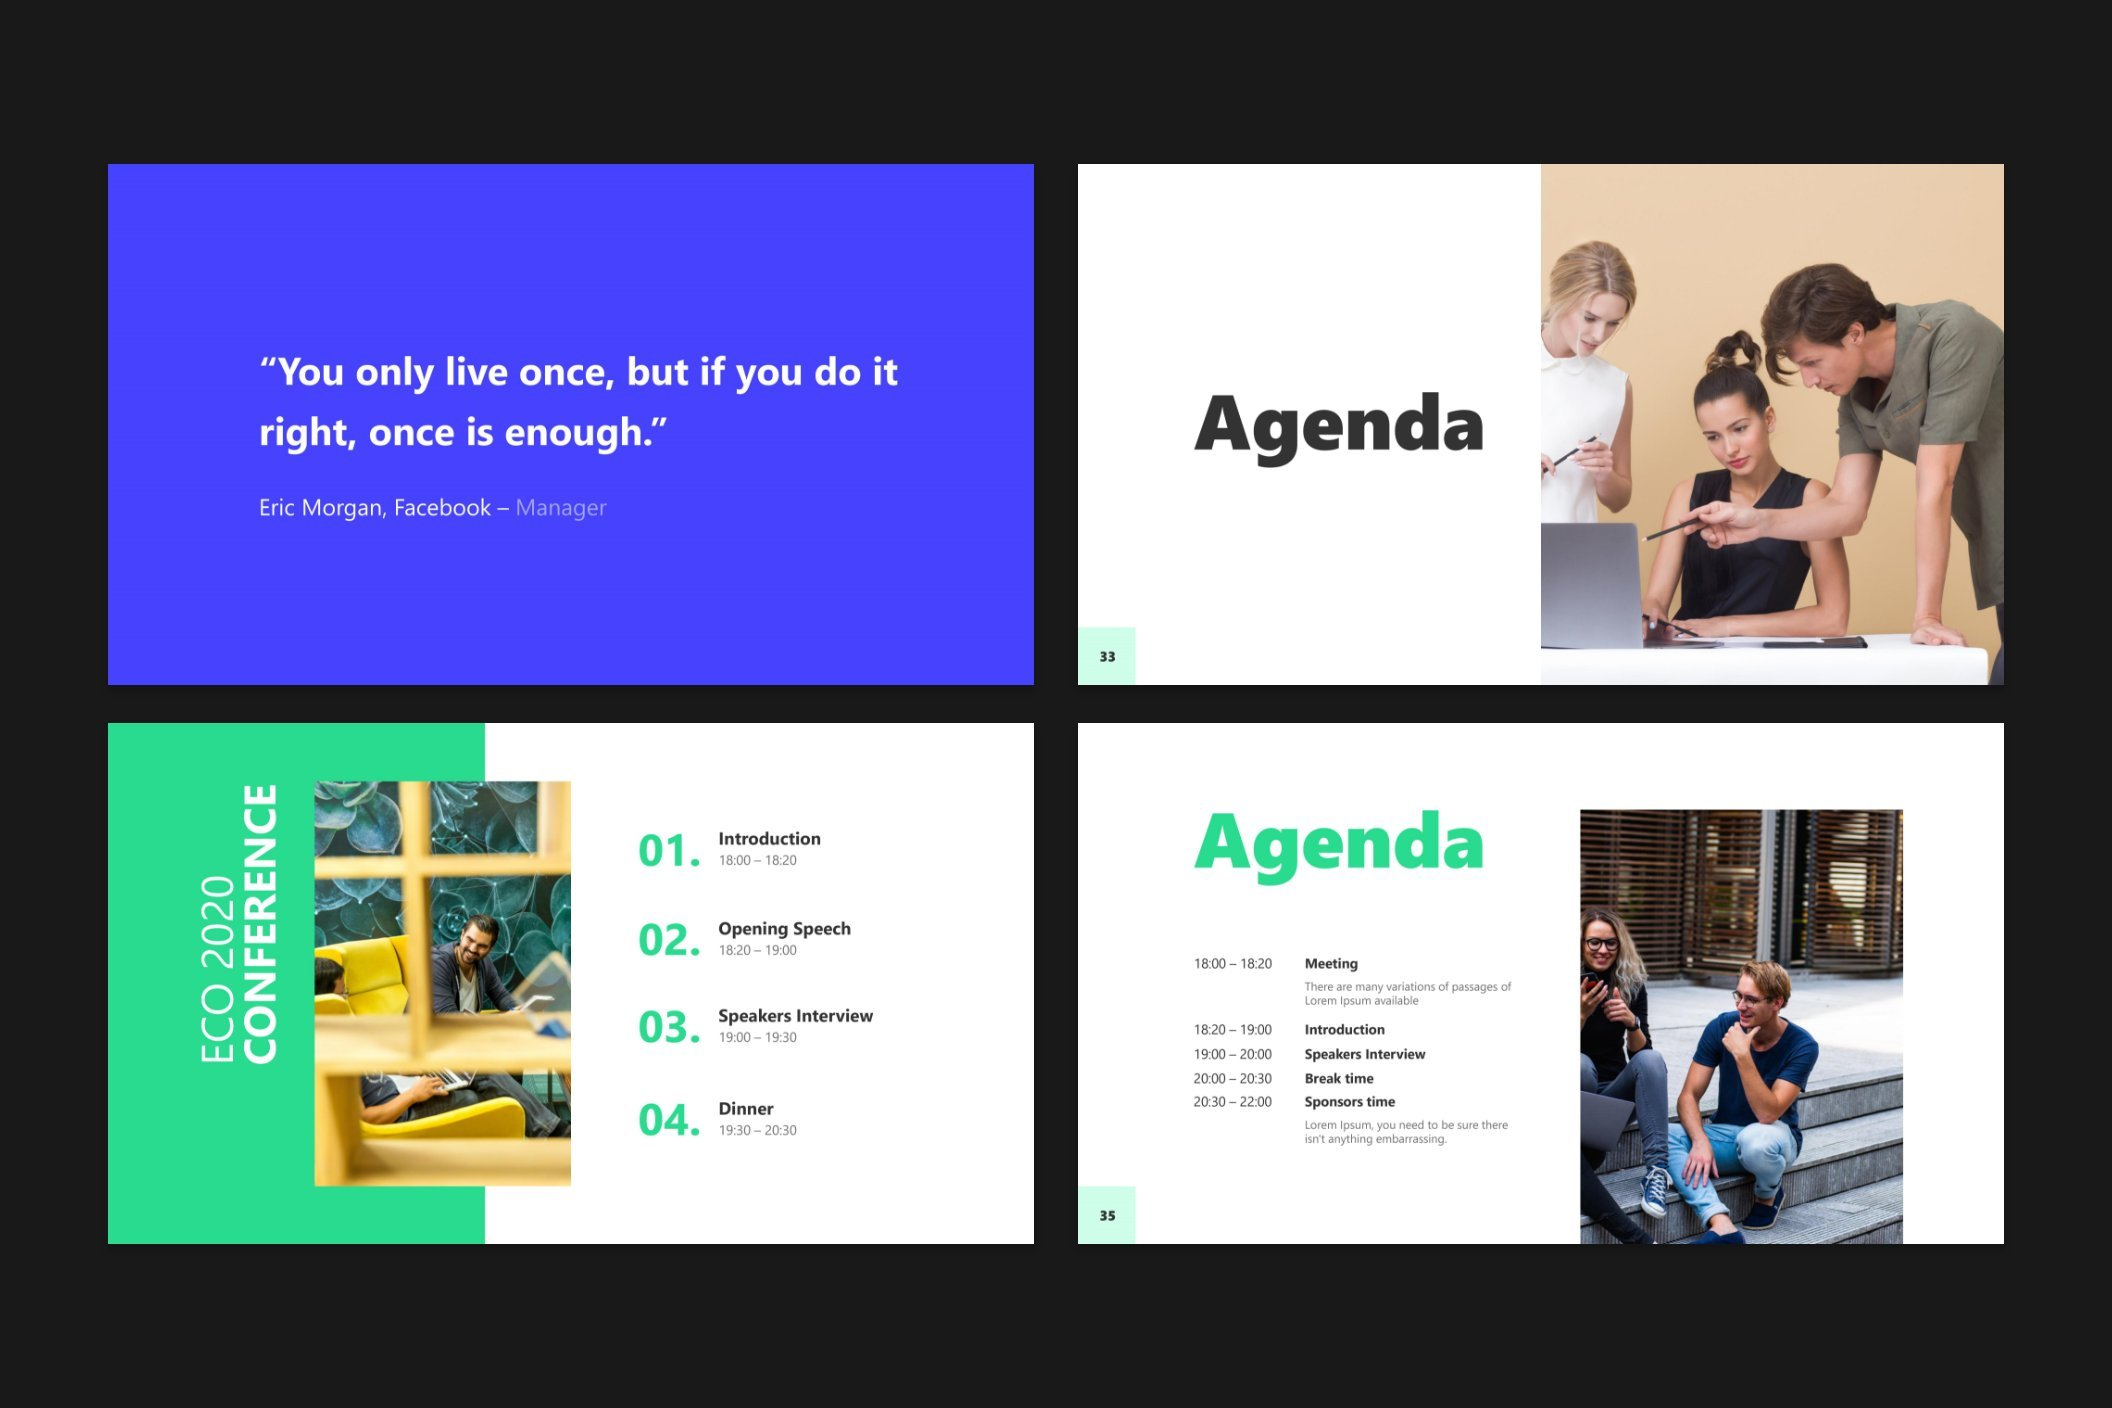 The daily plan can be painted in different formats. This template offers chronological timecode for the agenda.